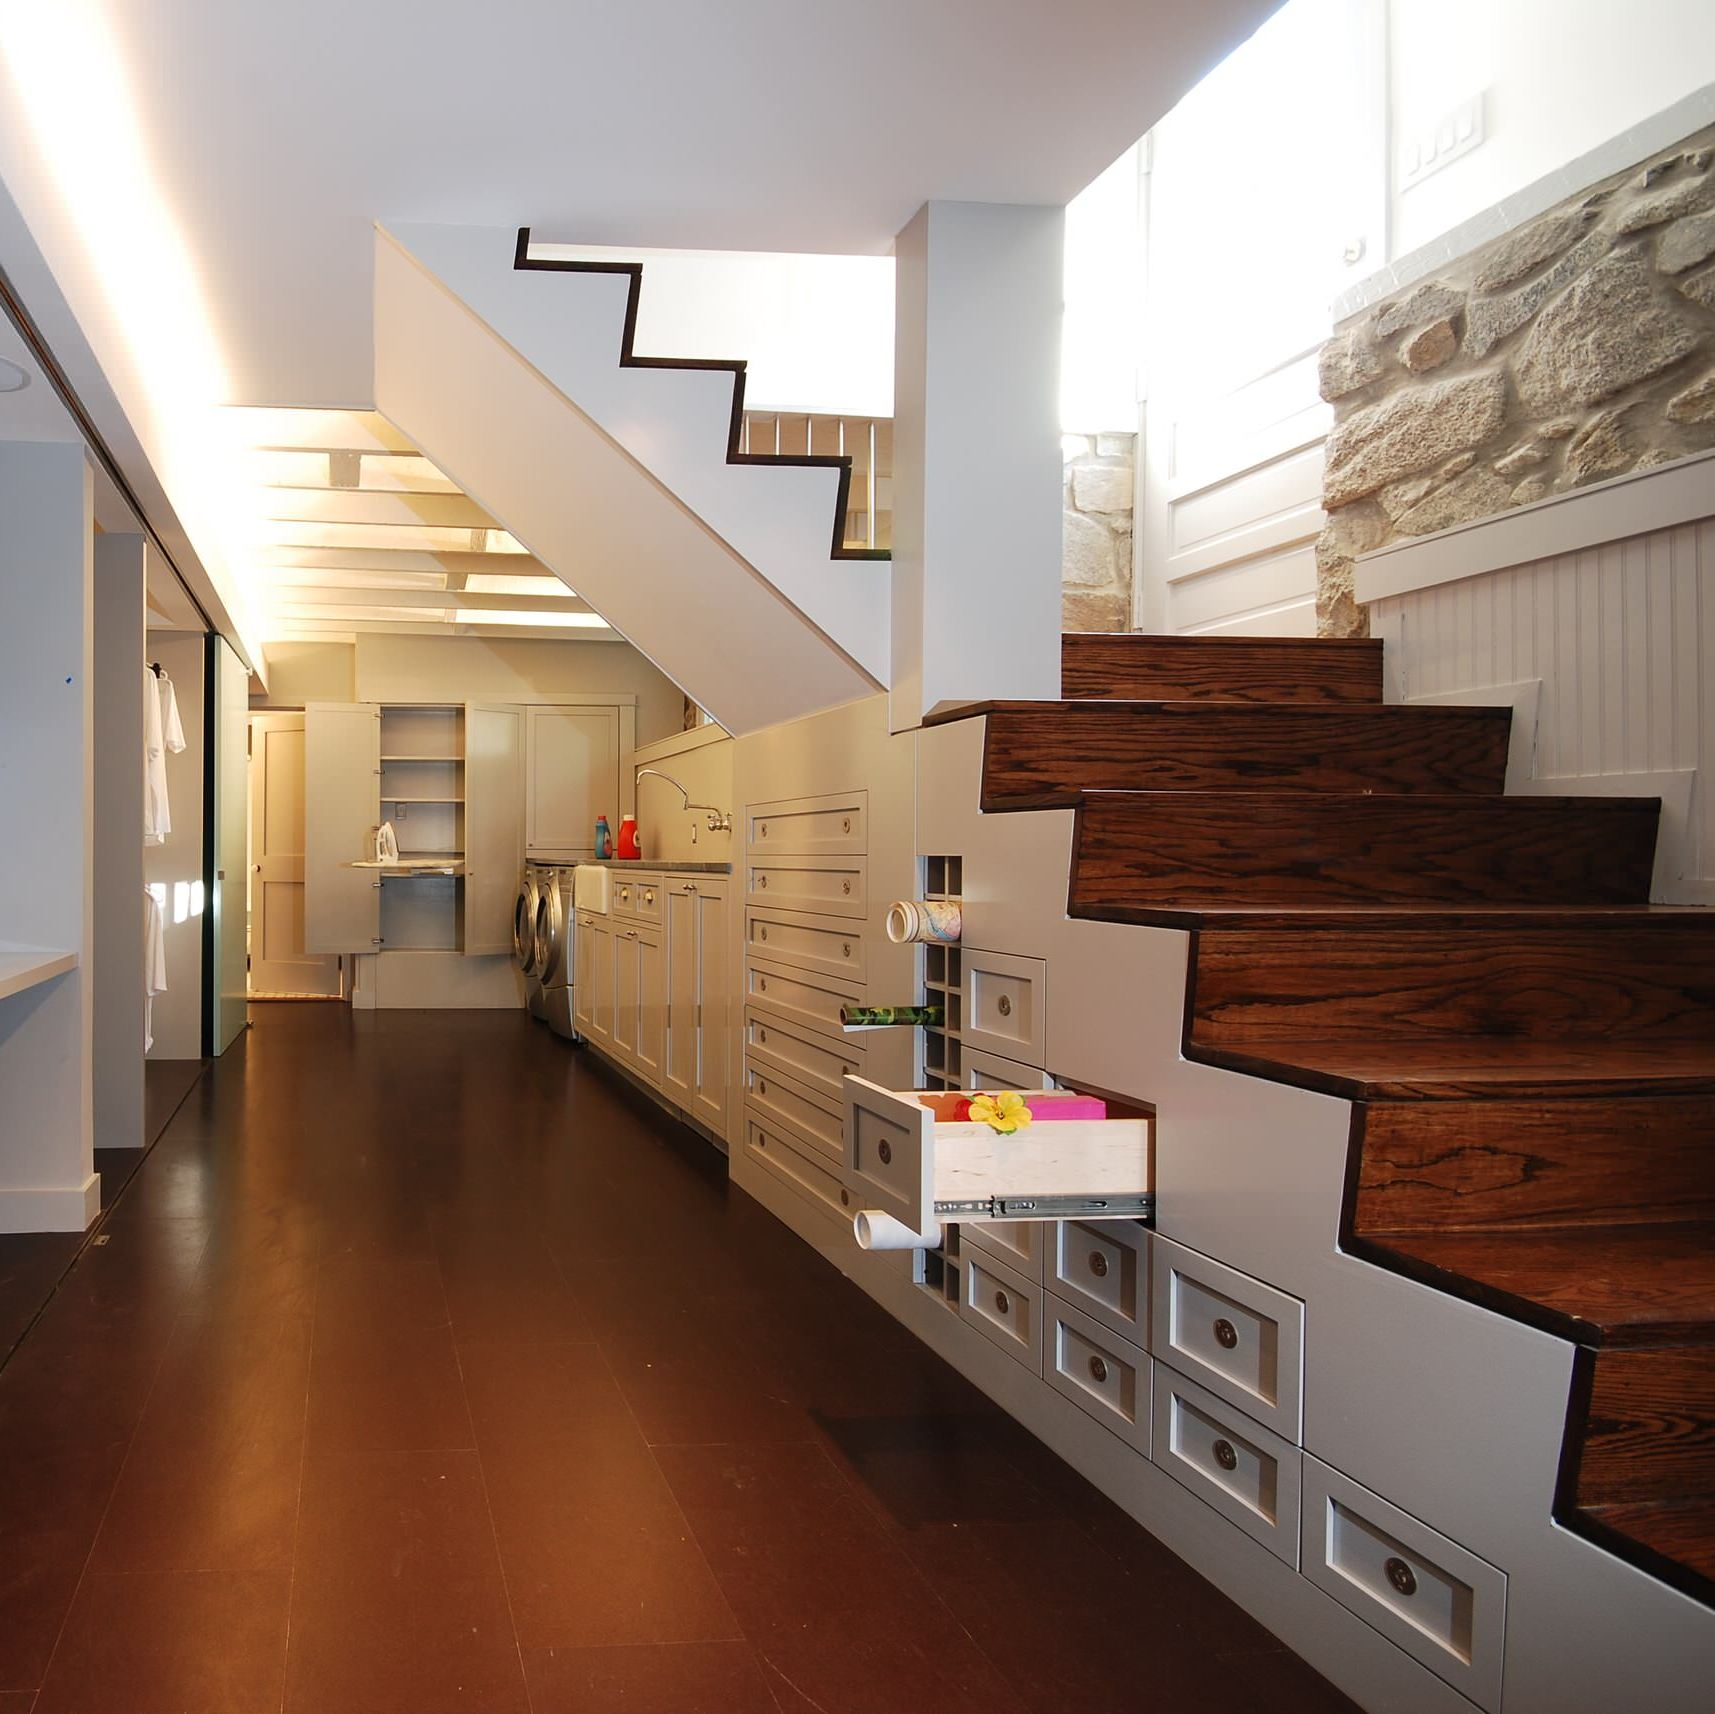 Custom basement under-stairs storage drawers